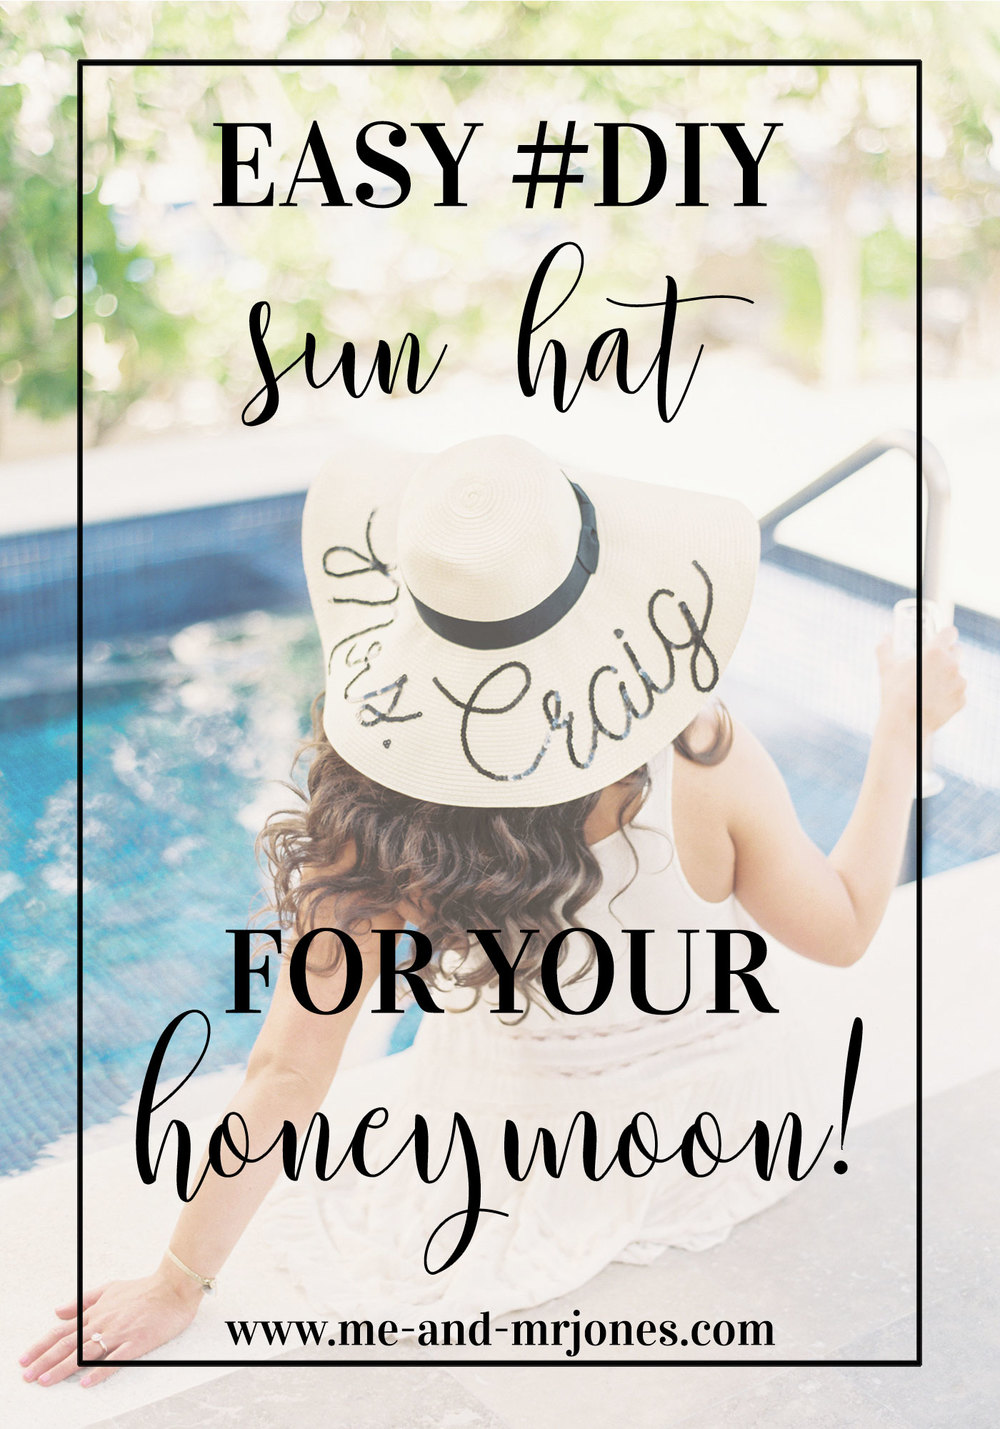 DIY Eugenia Kim sun hat, DIY conversation hat for your honeymoon, DIY for destination wedding, DIY floppy hat for a summer beach vacation.